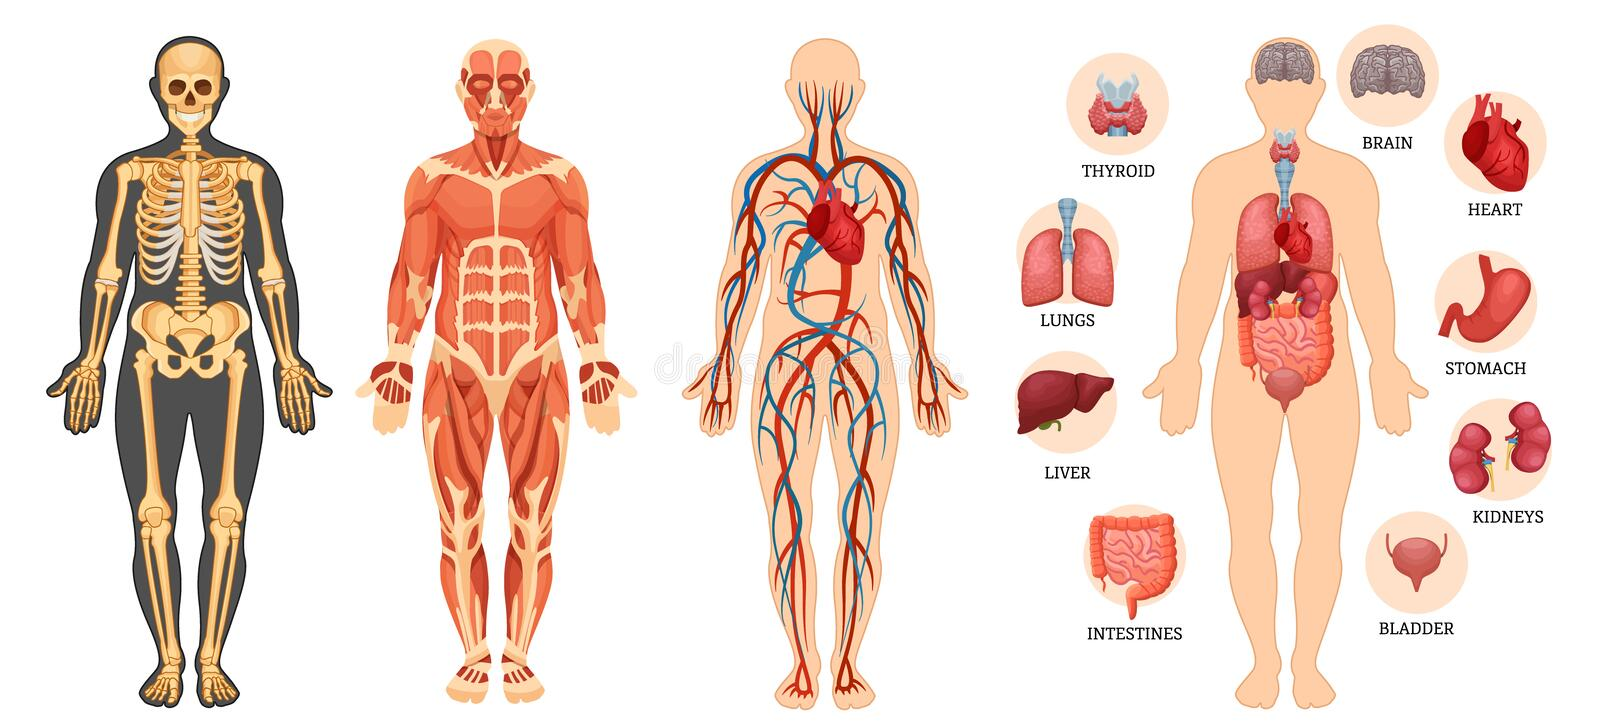 Structure of human body, skeleton, muscular system, blood vessels, organs. stock illustration